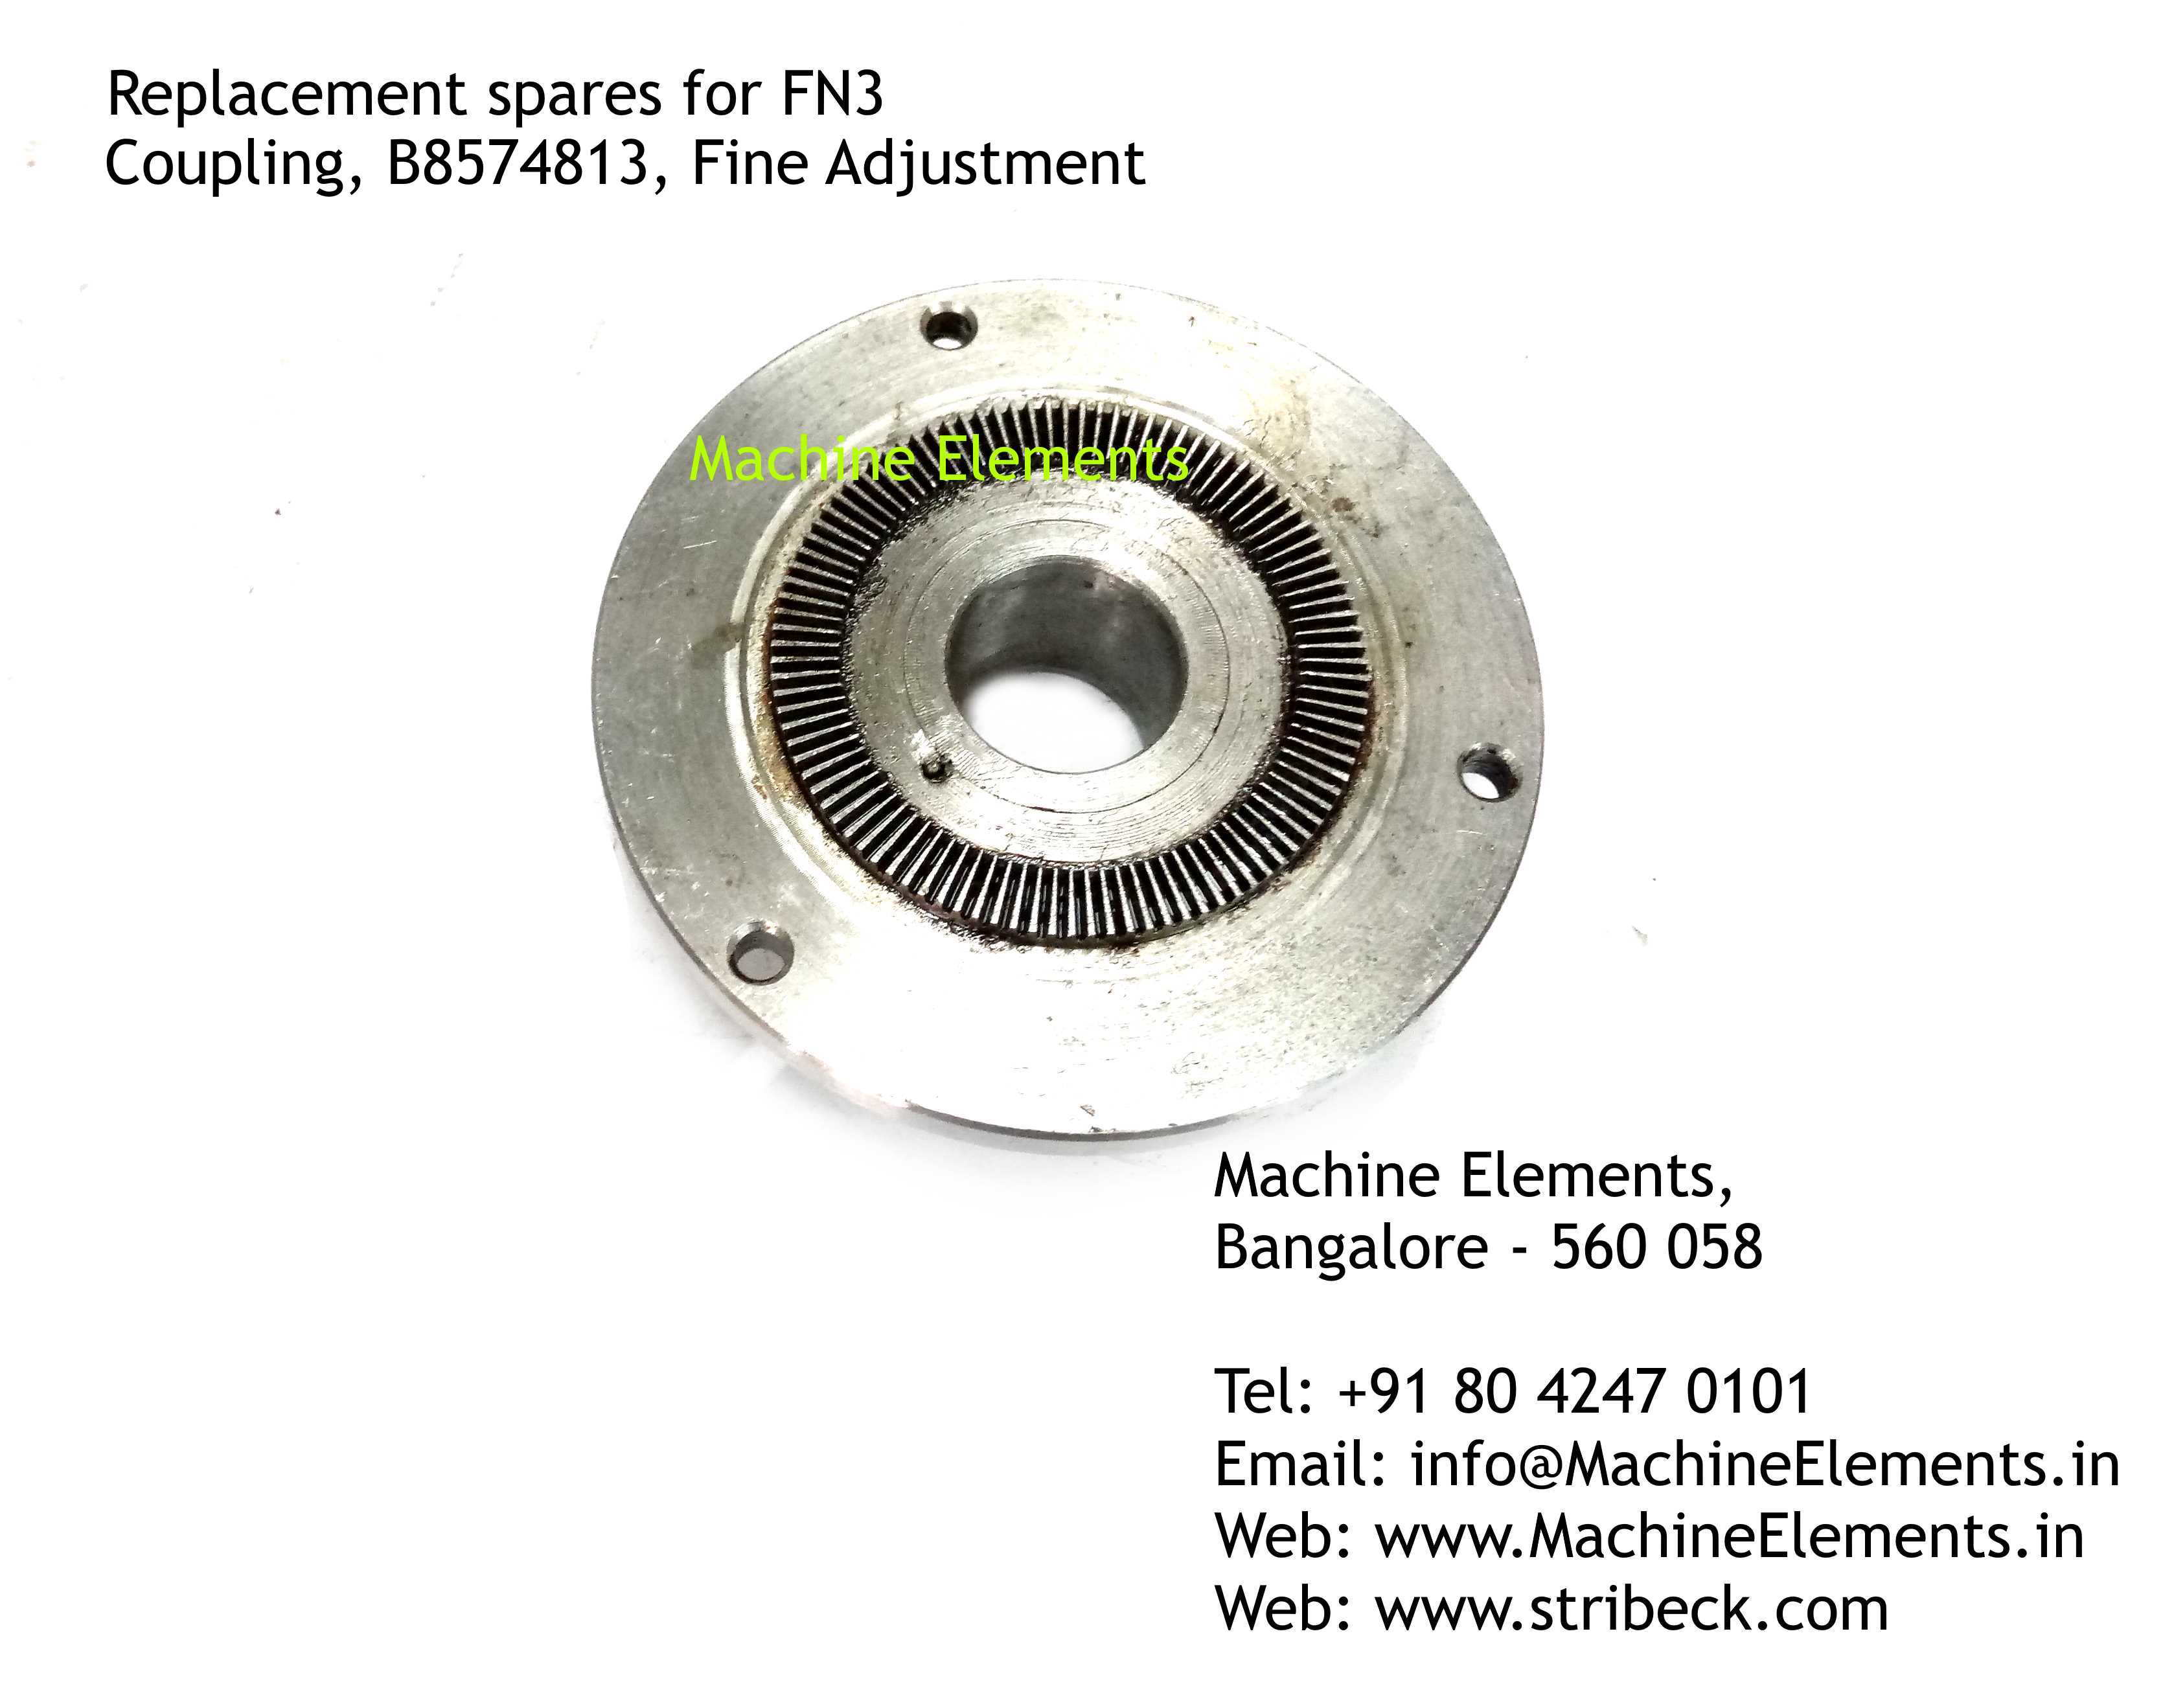 Coupling, B8574813, Fine Adjustment